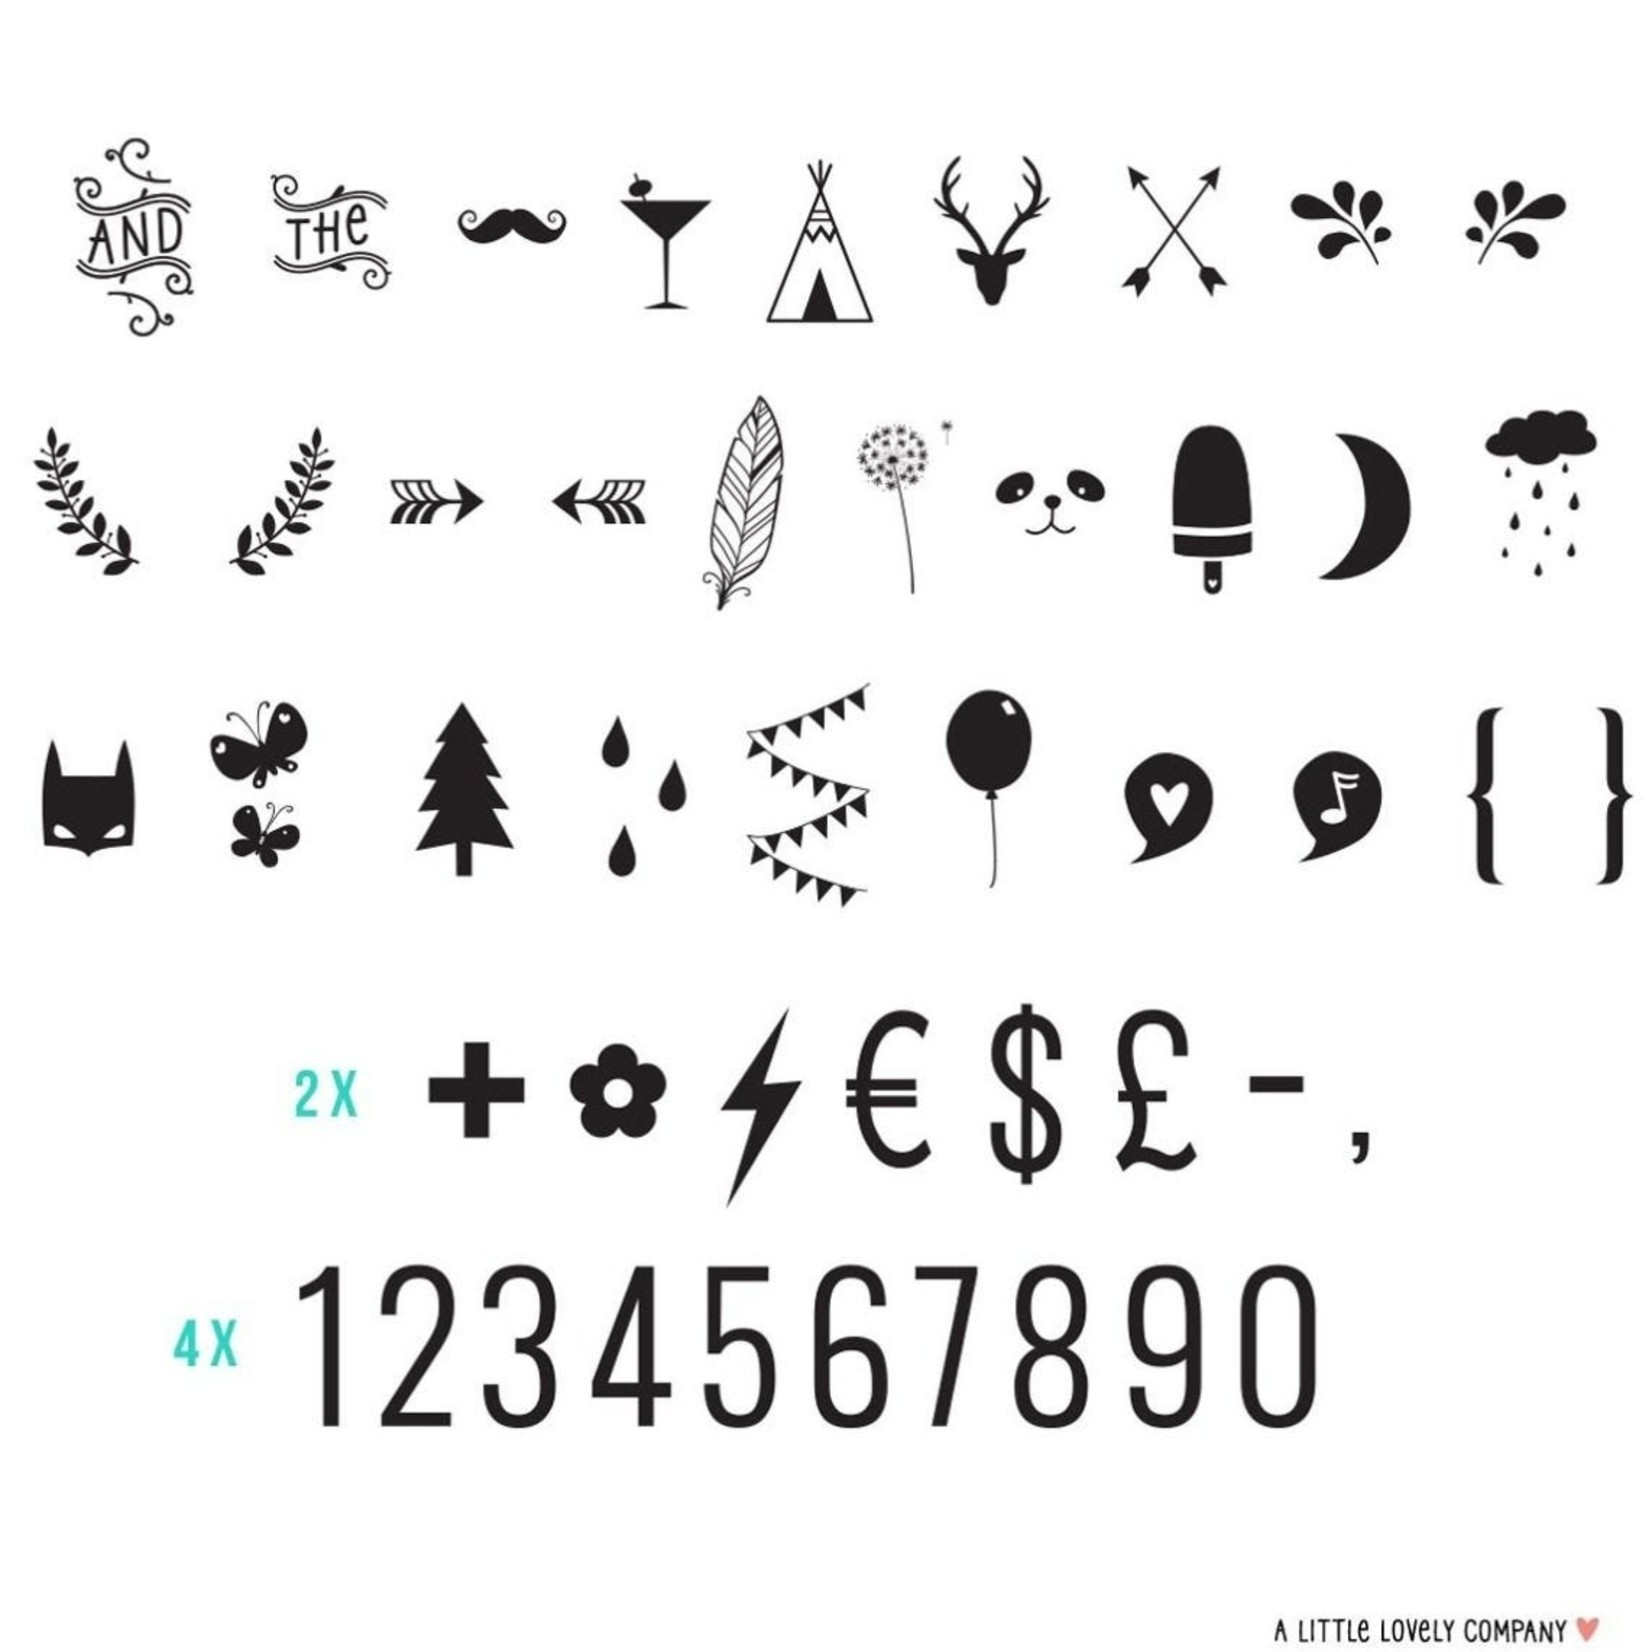 A little lovely company Letterset - 85 Numbers & Symbols